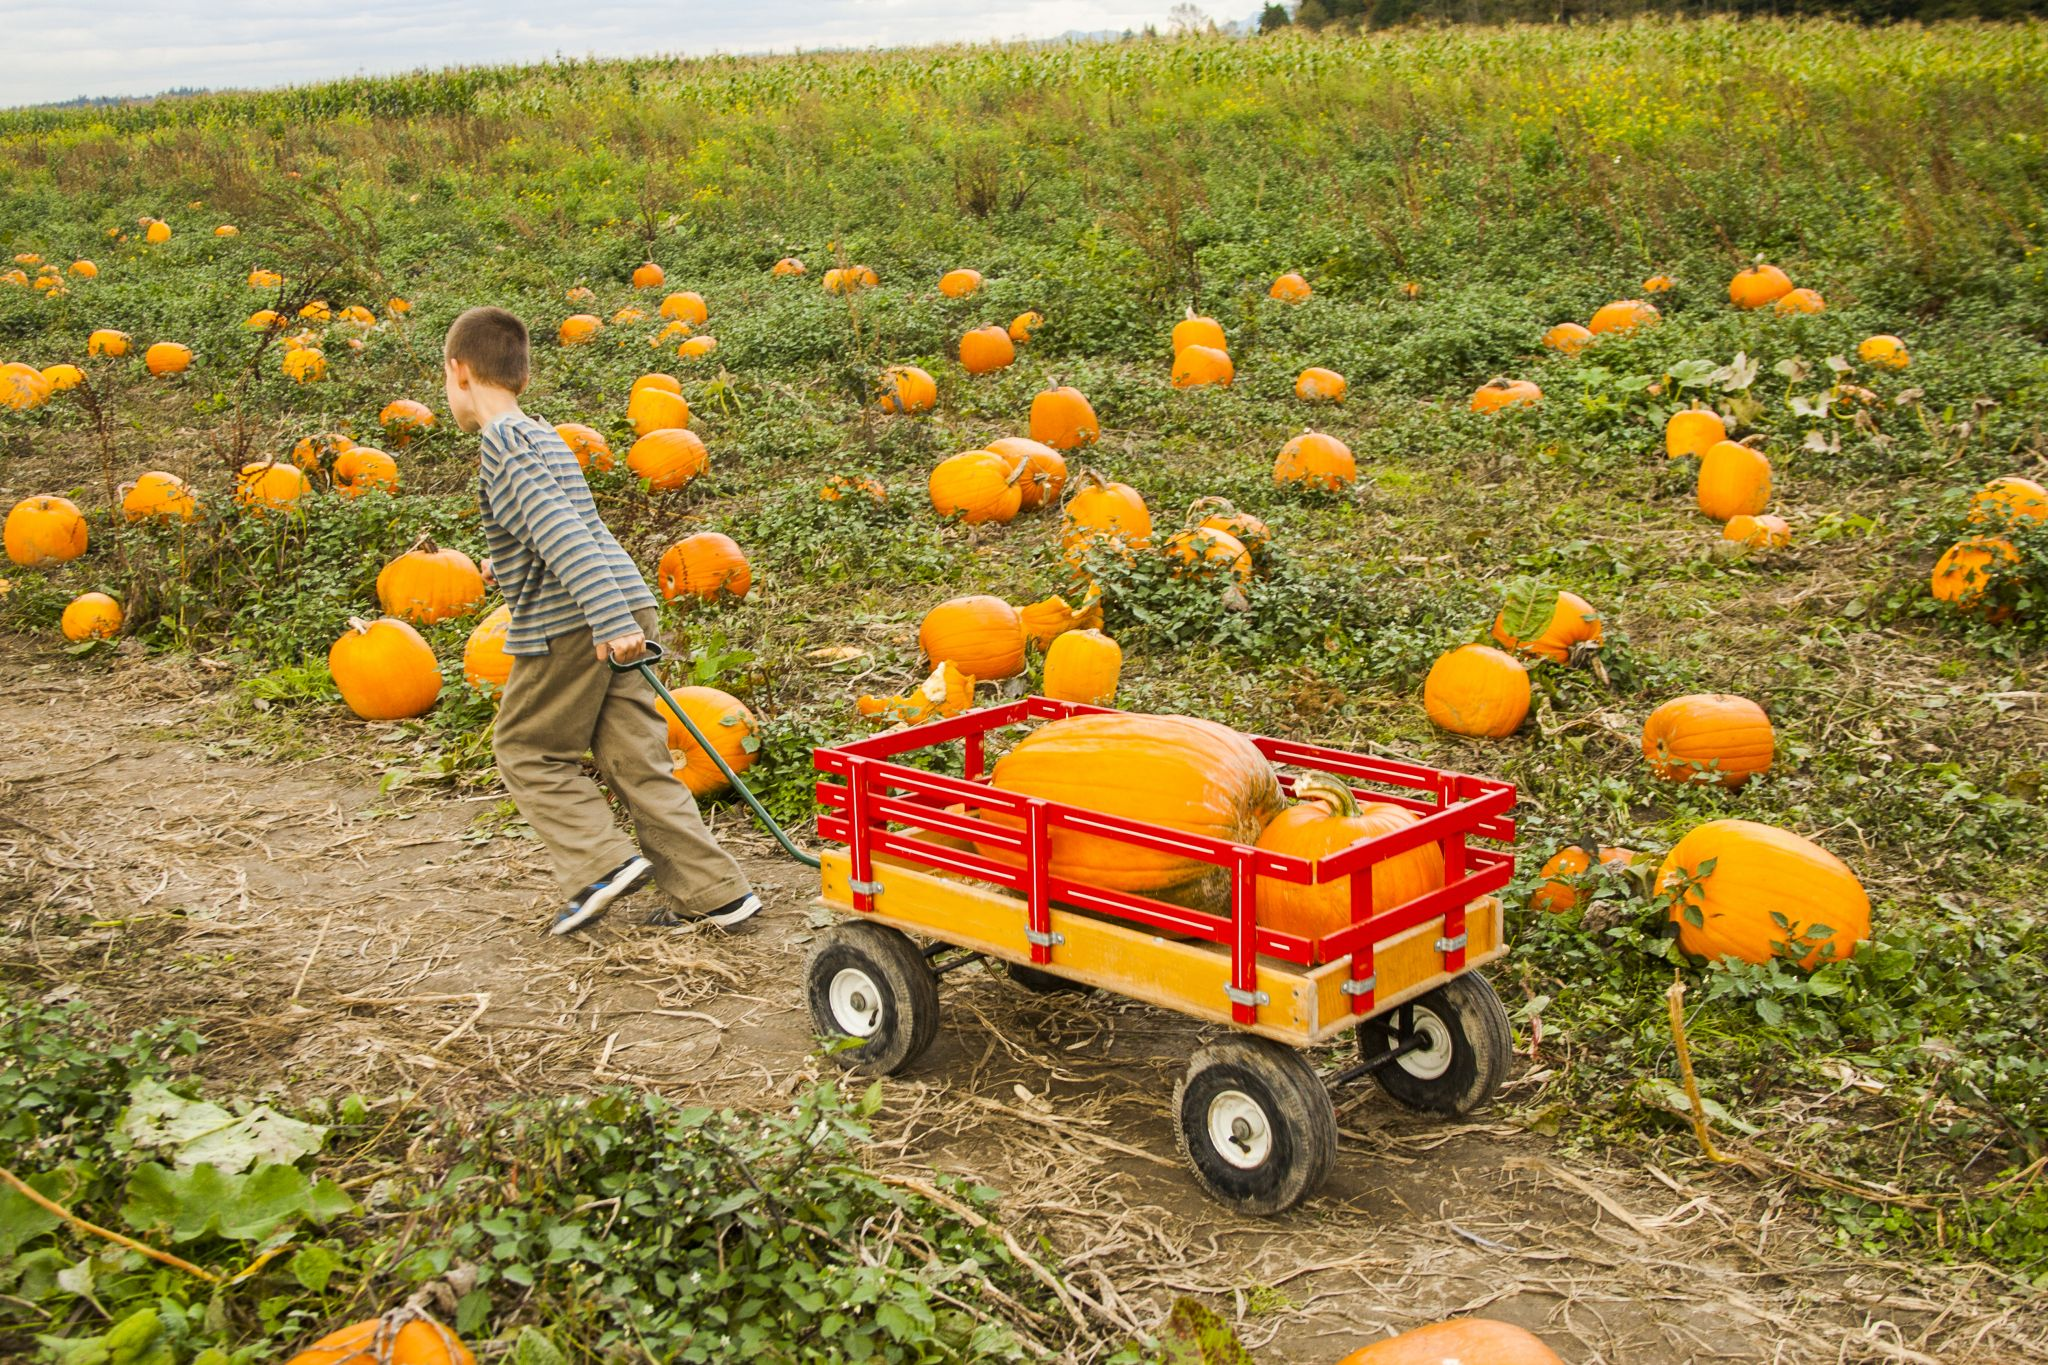 9 popular pumpkin patches less than an hour drive from Seattle